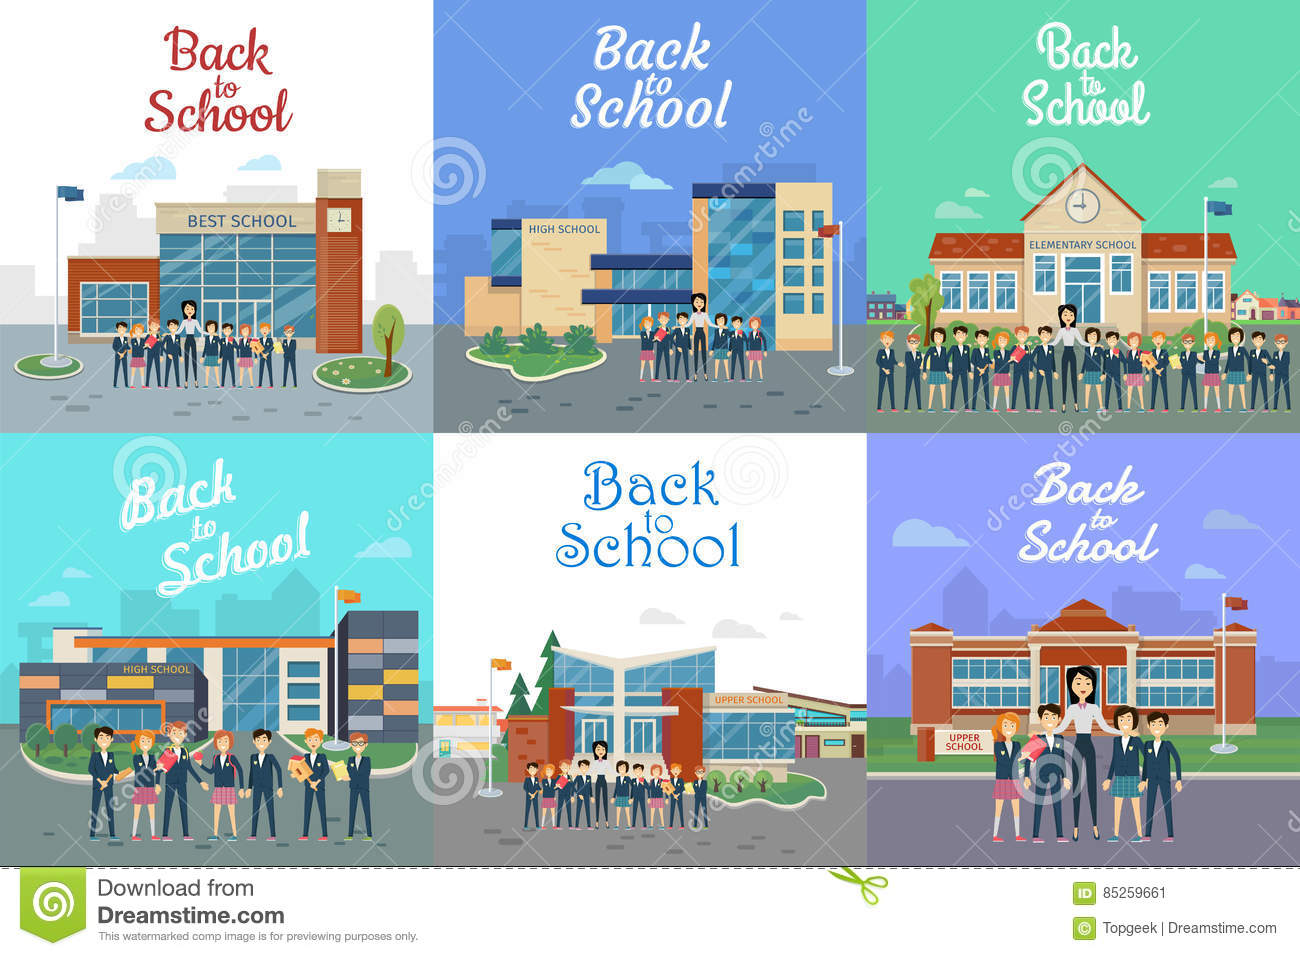 what are the different types of schools